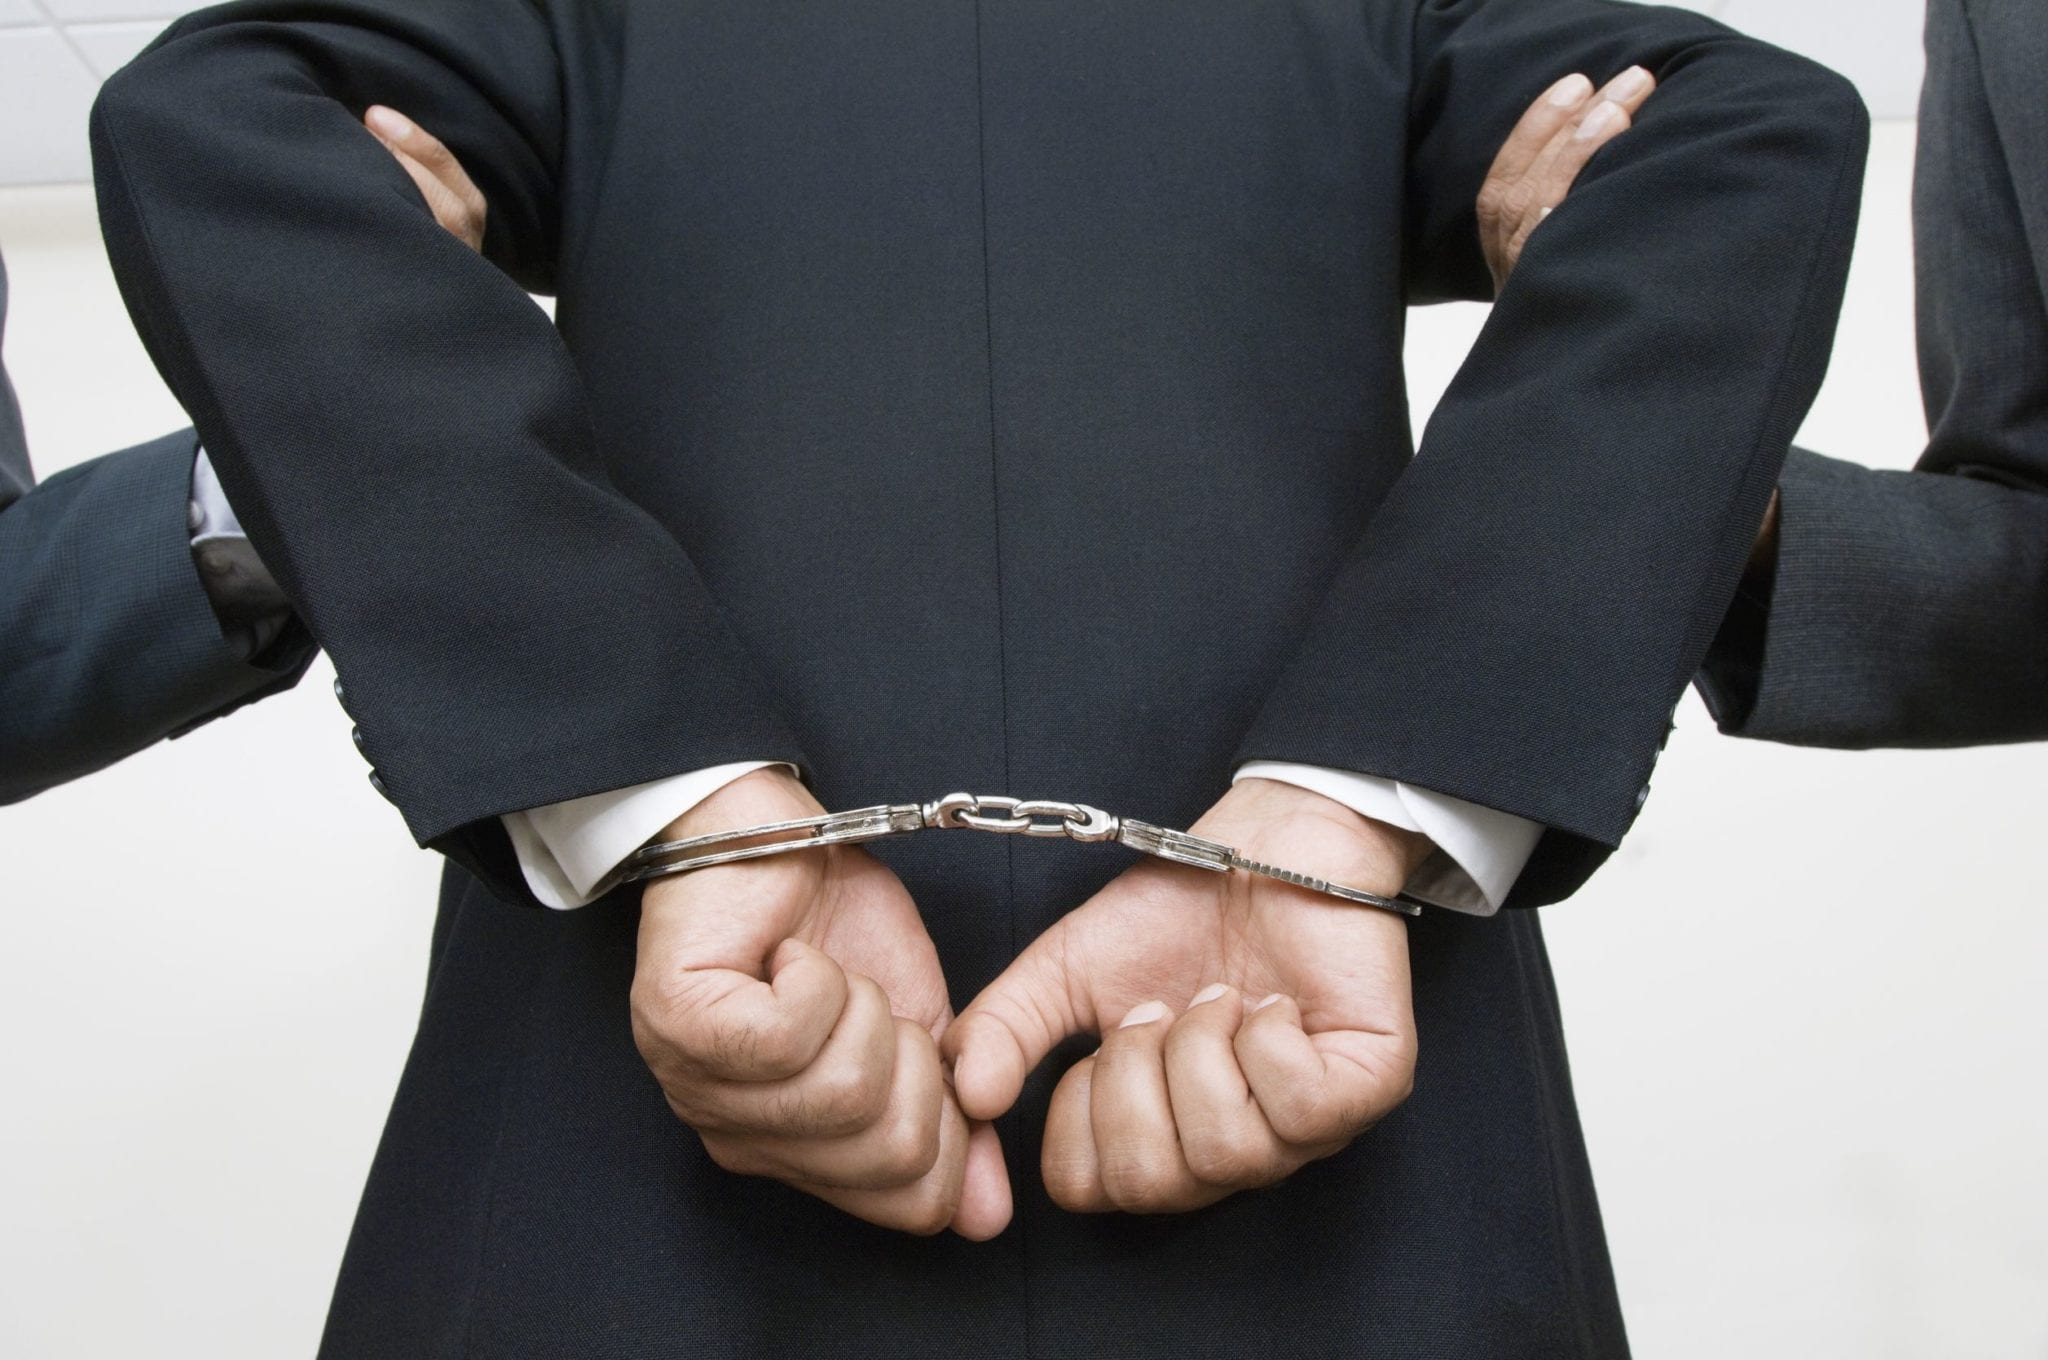 Fort Worth Theft Defense Lawyer